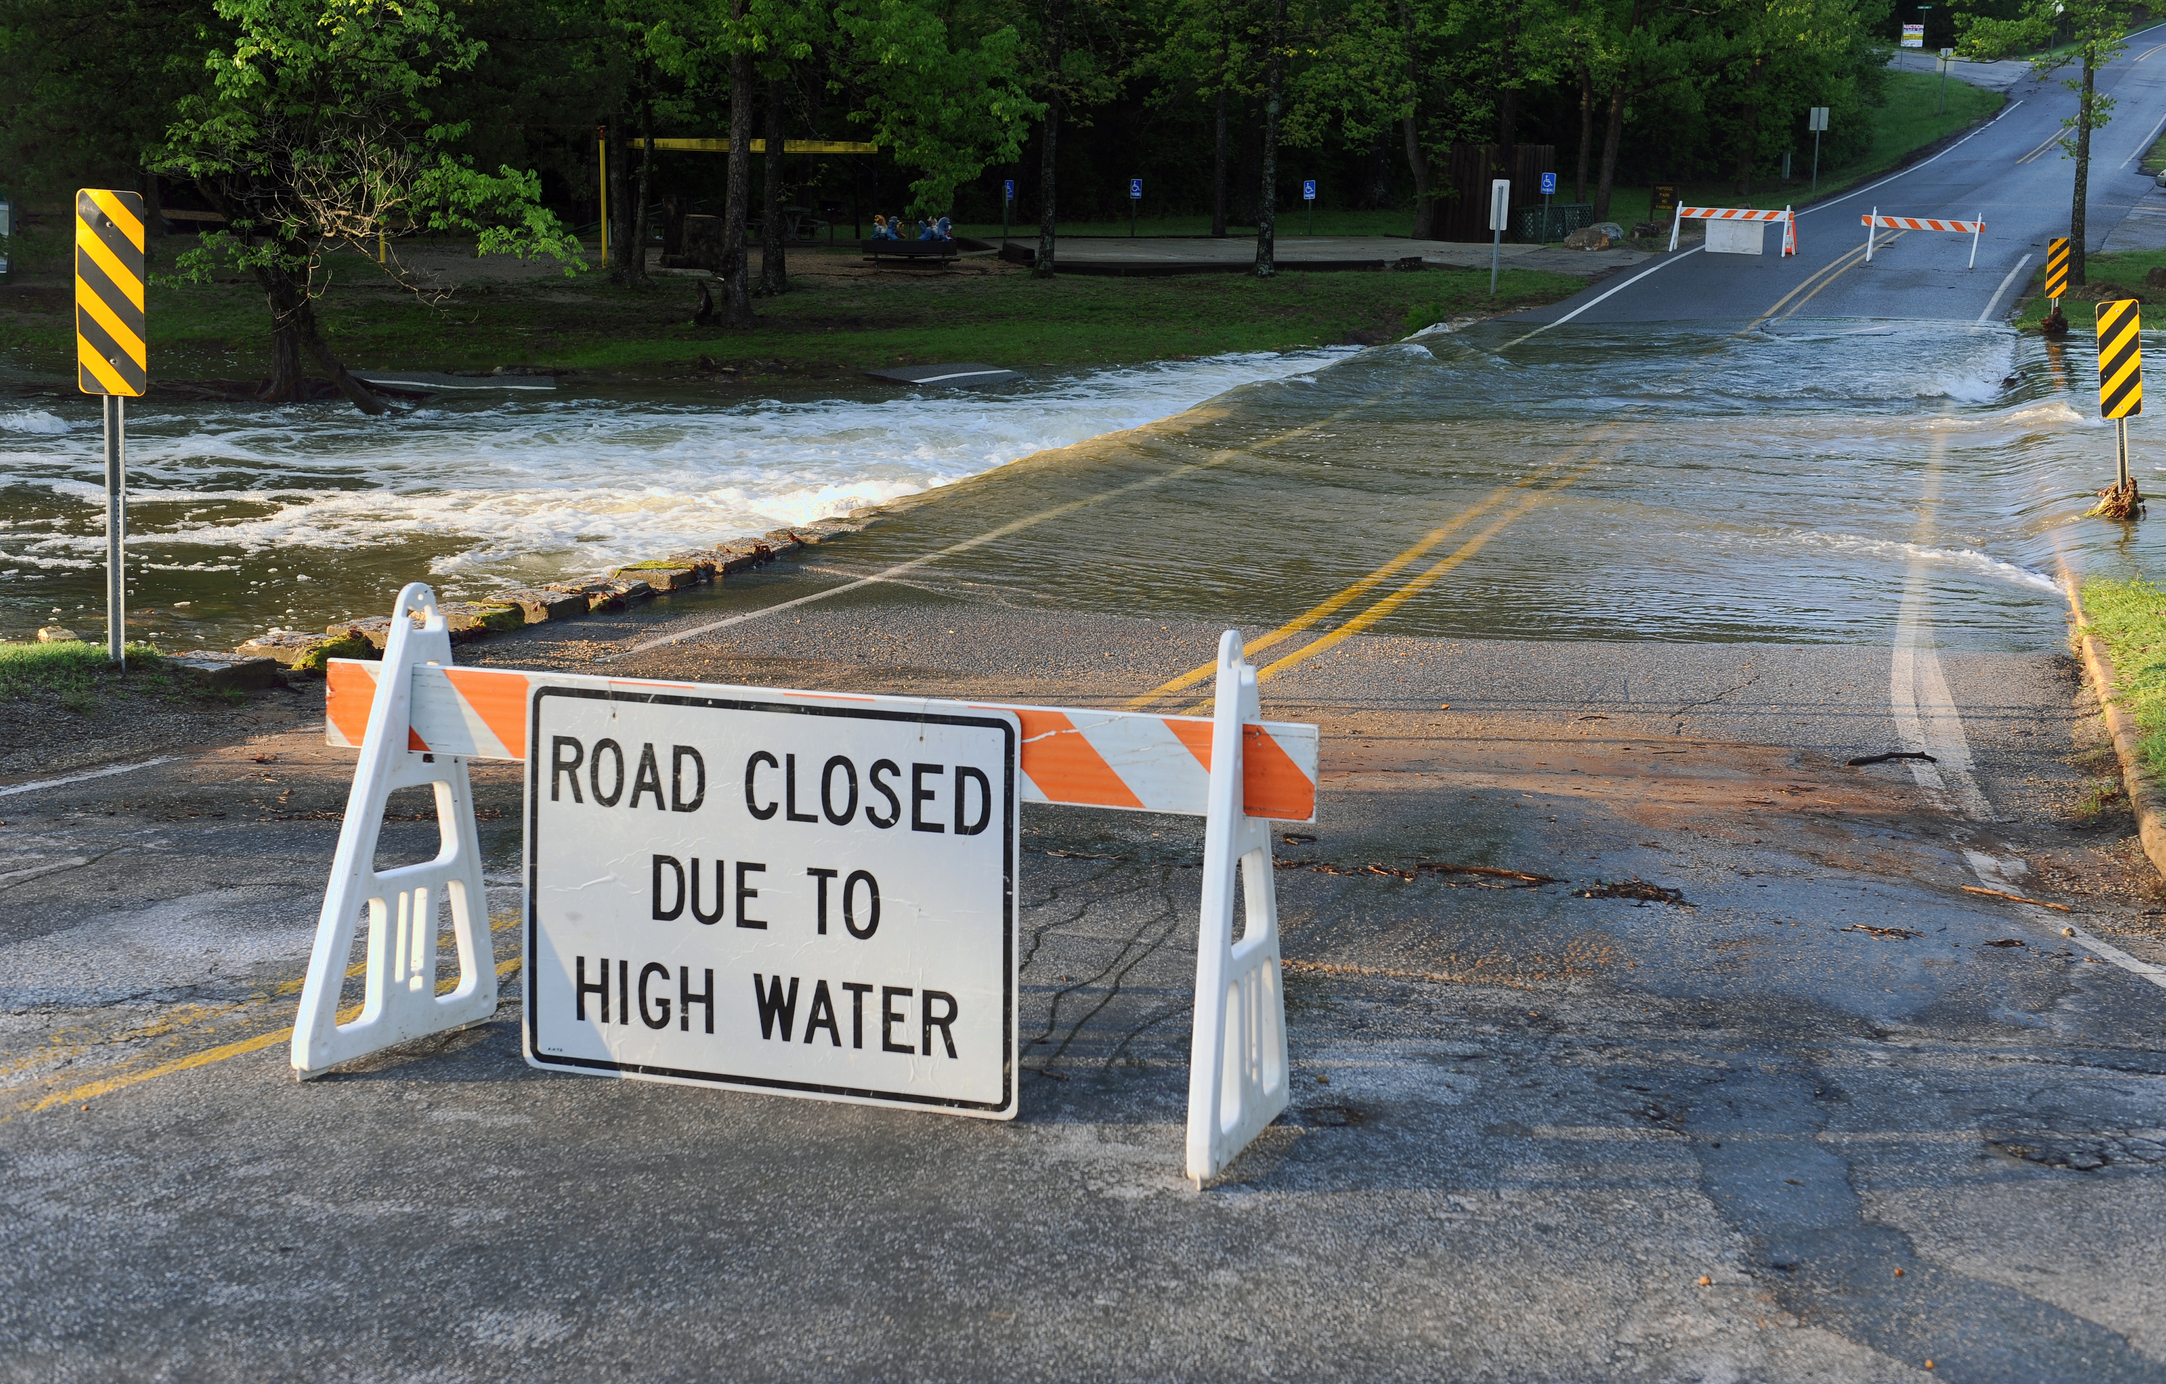 Road Closed sign due to high water in front of water crossing over the road